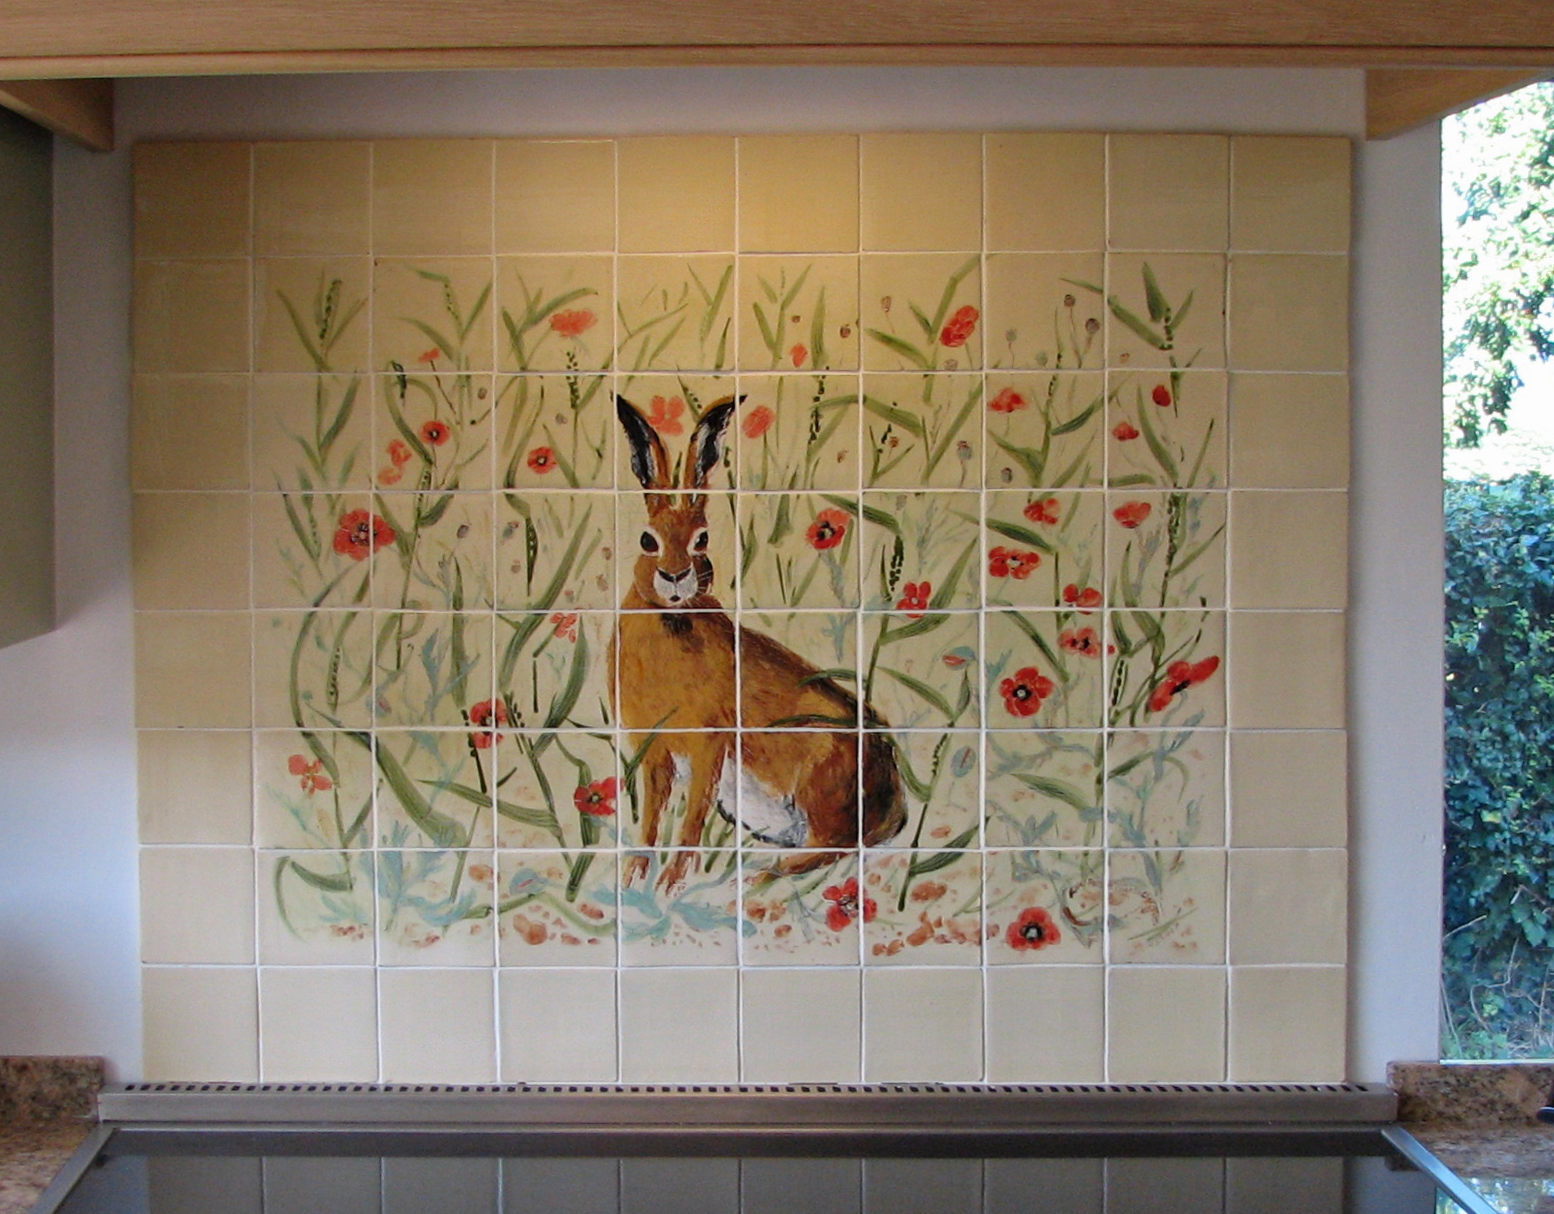 The hare in the wheat field with poppies - Sizes and designs may be varied to suit each client. All the tiles are our own 100mm.